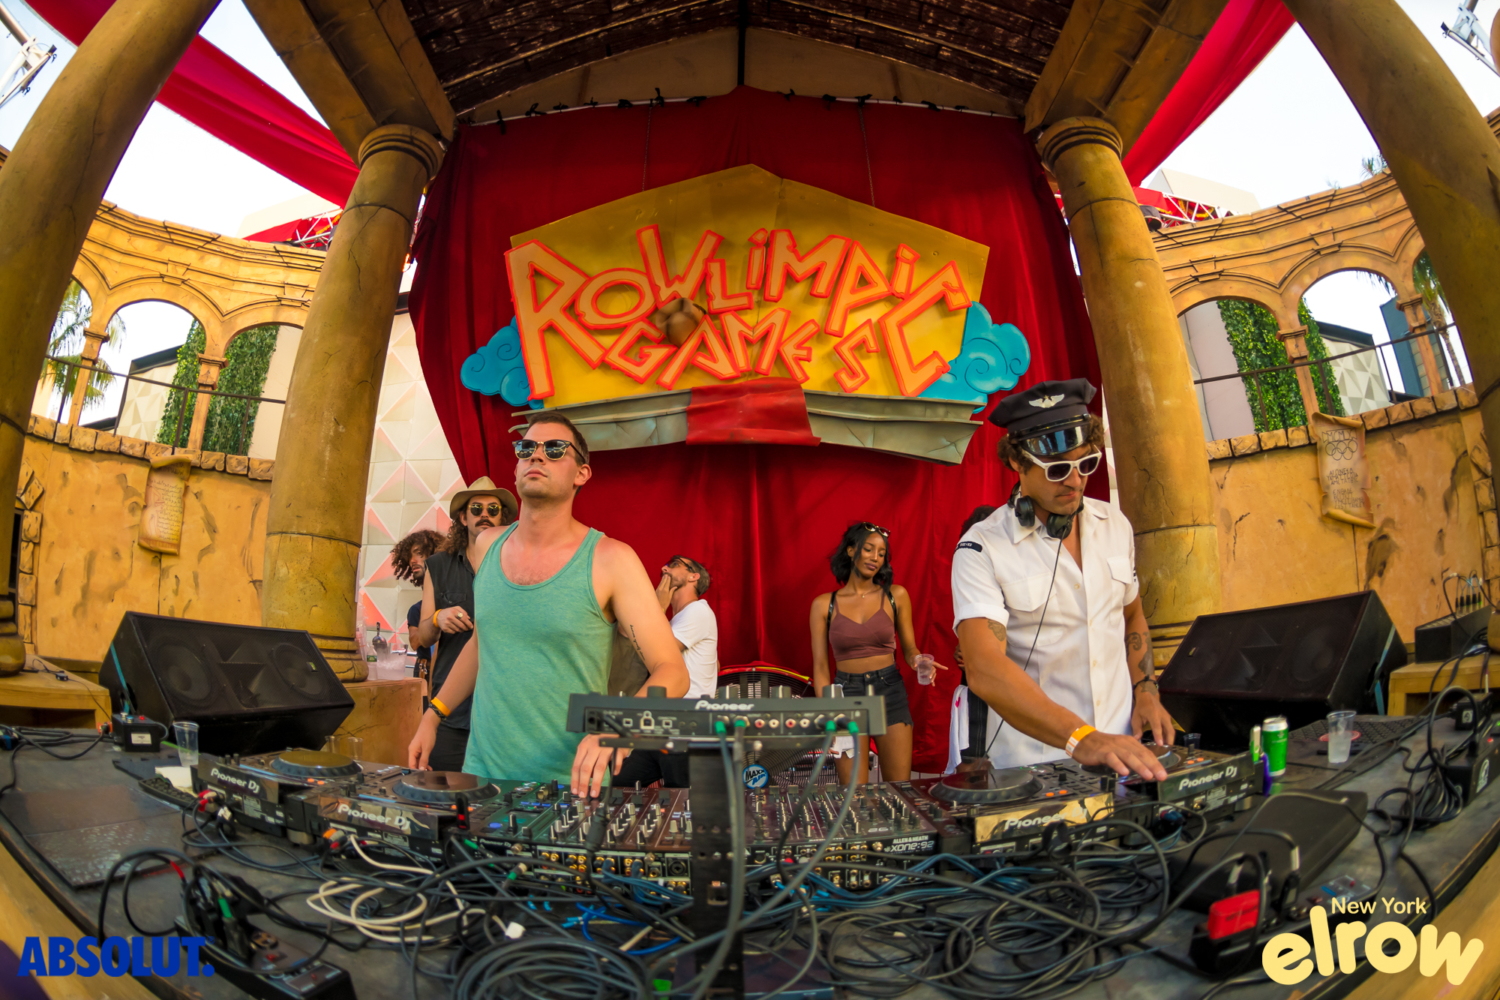 Making magic happen at Elrow Open Air – photos by aLIVE coverageELROW2018 0728 194756 9047 ALIVECOVERAGE